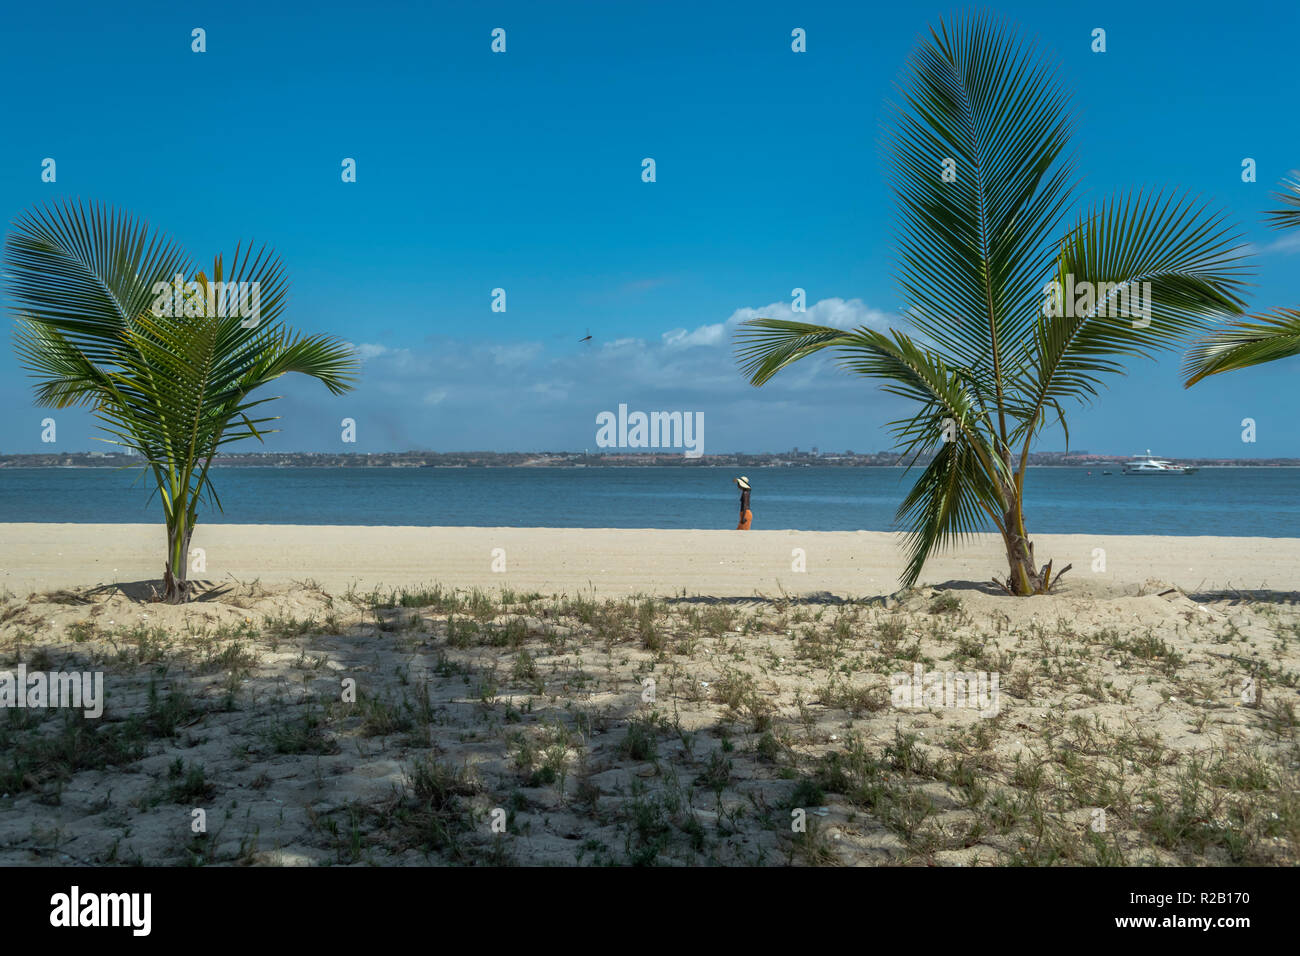 View of palm trees and a woman on beach, and boats on water, on the island of Mussulo, Luanda, Angola... - Stock Image